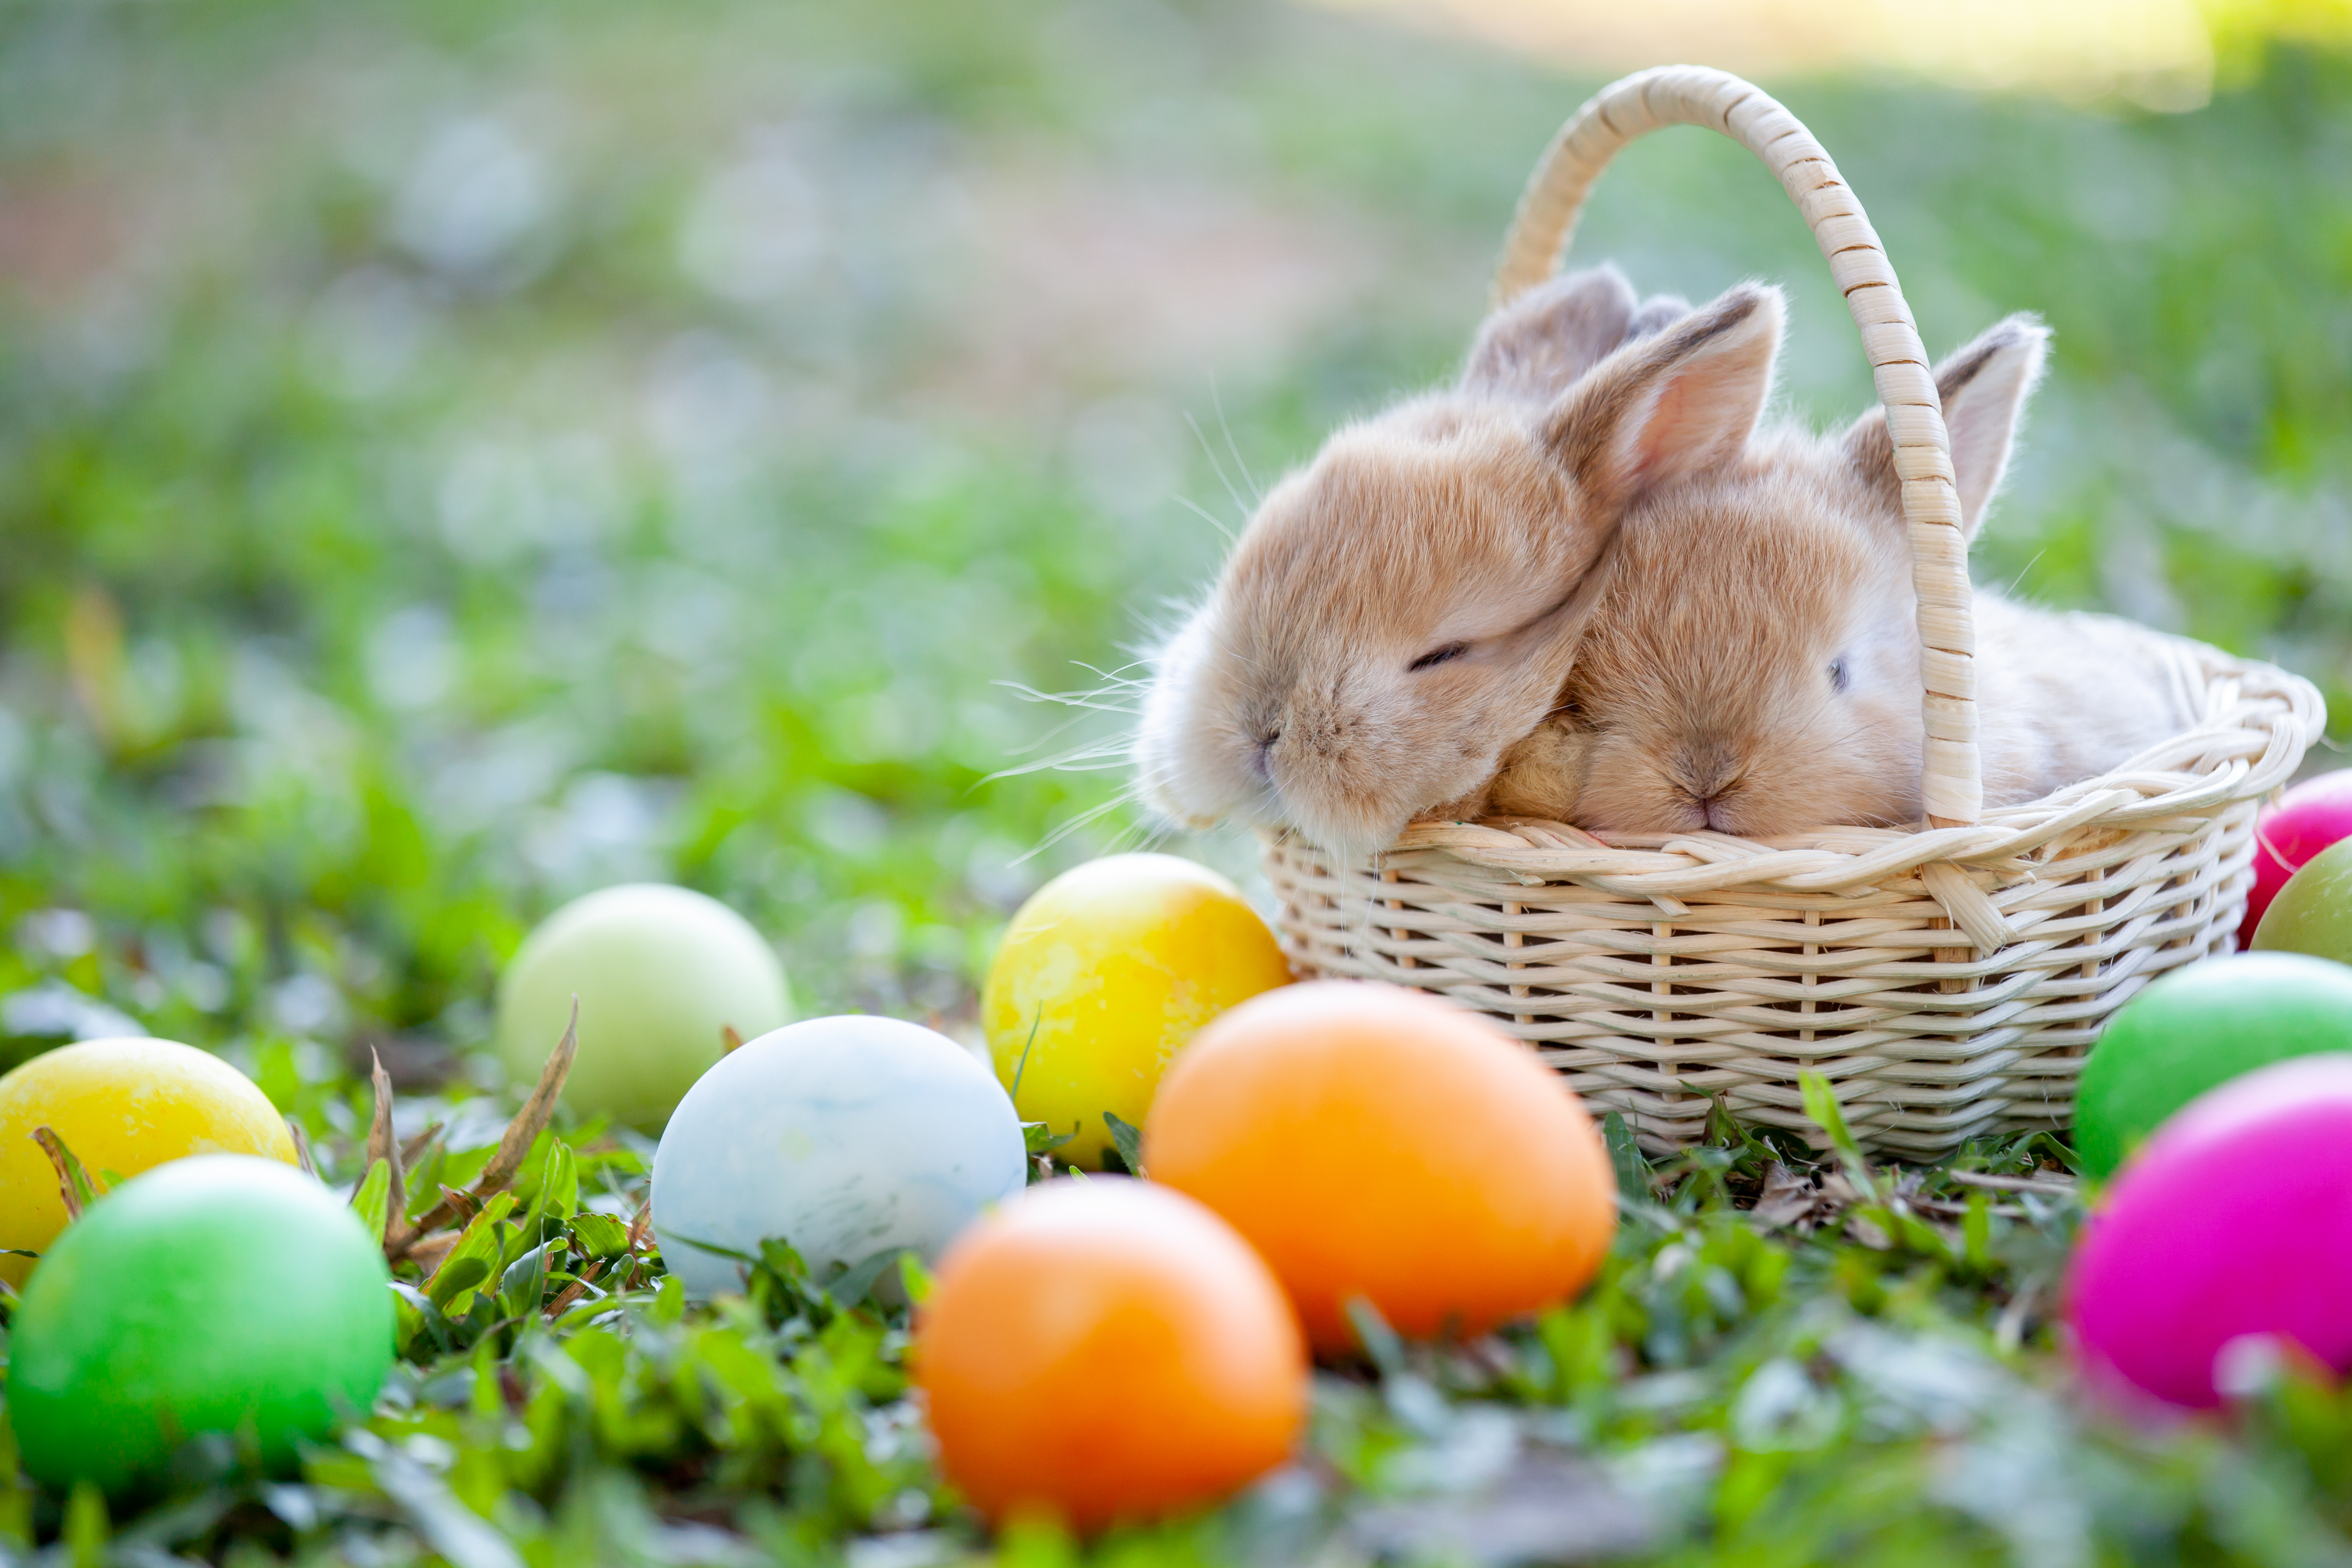 Report: 95% Of Rabbits Gifted For Easter Don't Live To Age